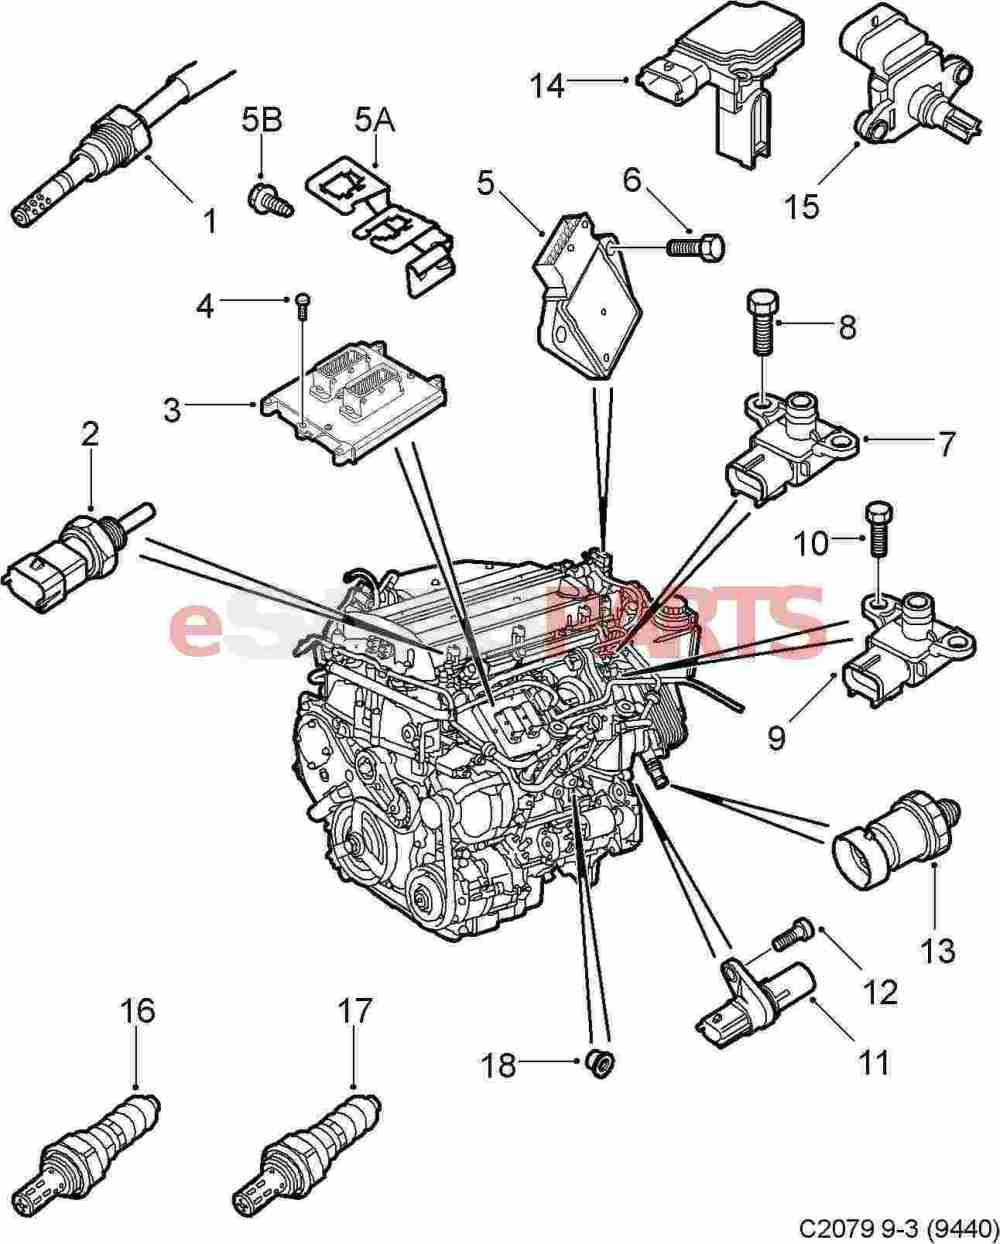 medium resolution of 2003 saab 9 5 engine diagram wiring library rh 14 muehlwald de saab 9 3